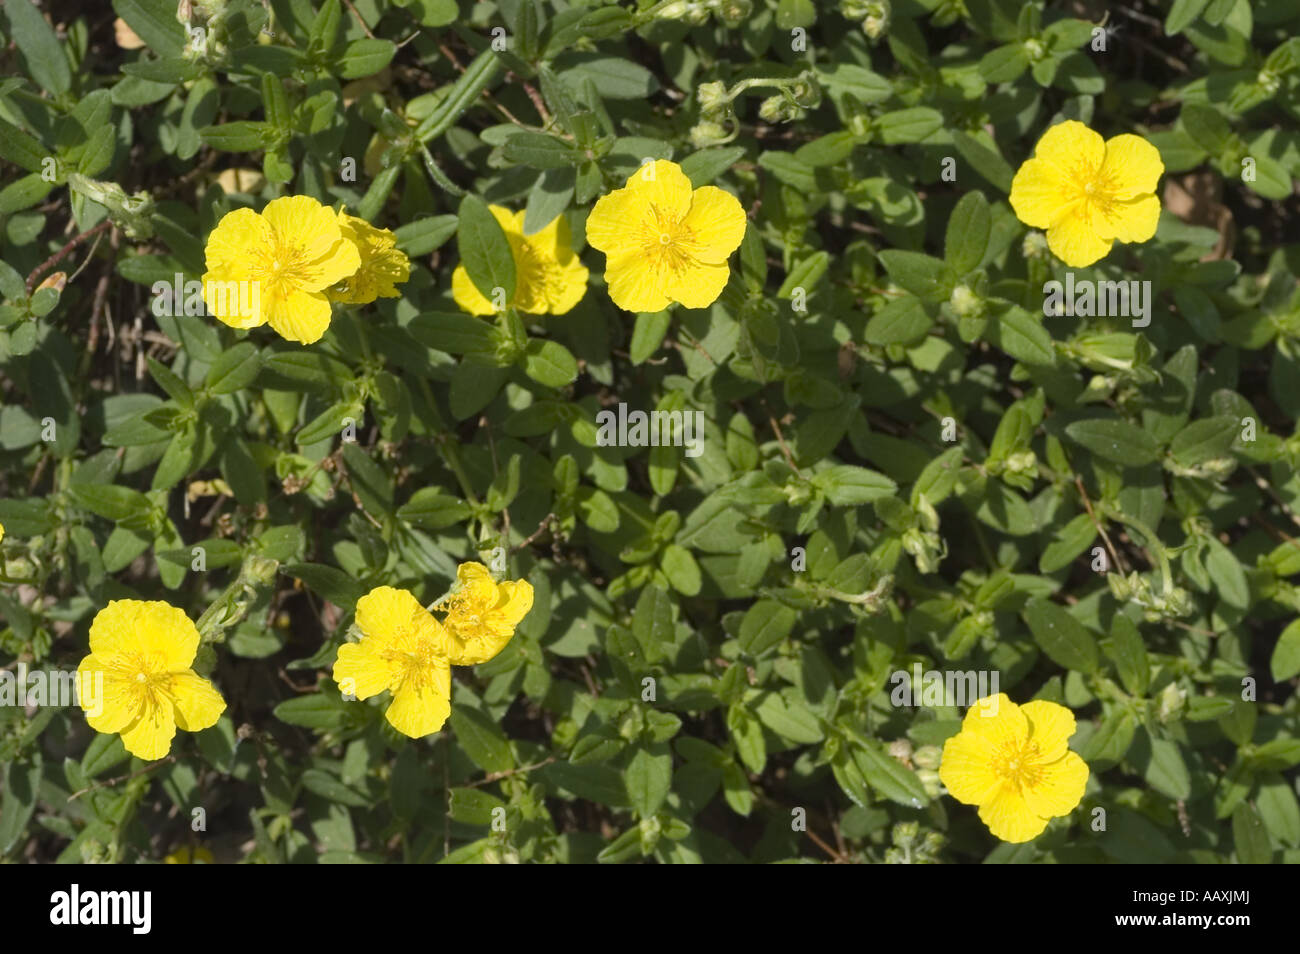 Yellow spring flowers of common rockrose or sun rose cistaceae yellow spring flowers of common rockrose or sun rose cistaceae helianthemum nummularium ssp grandiflorum europe mightylinksfo